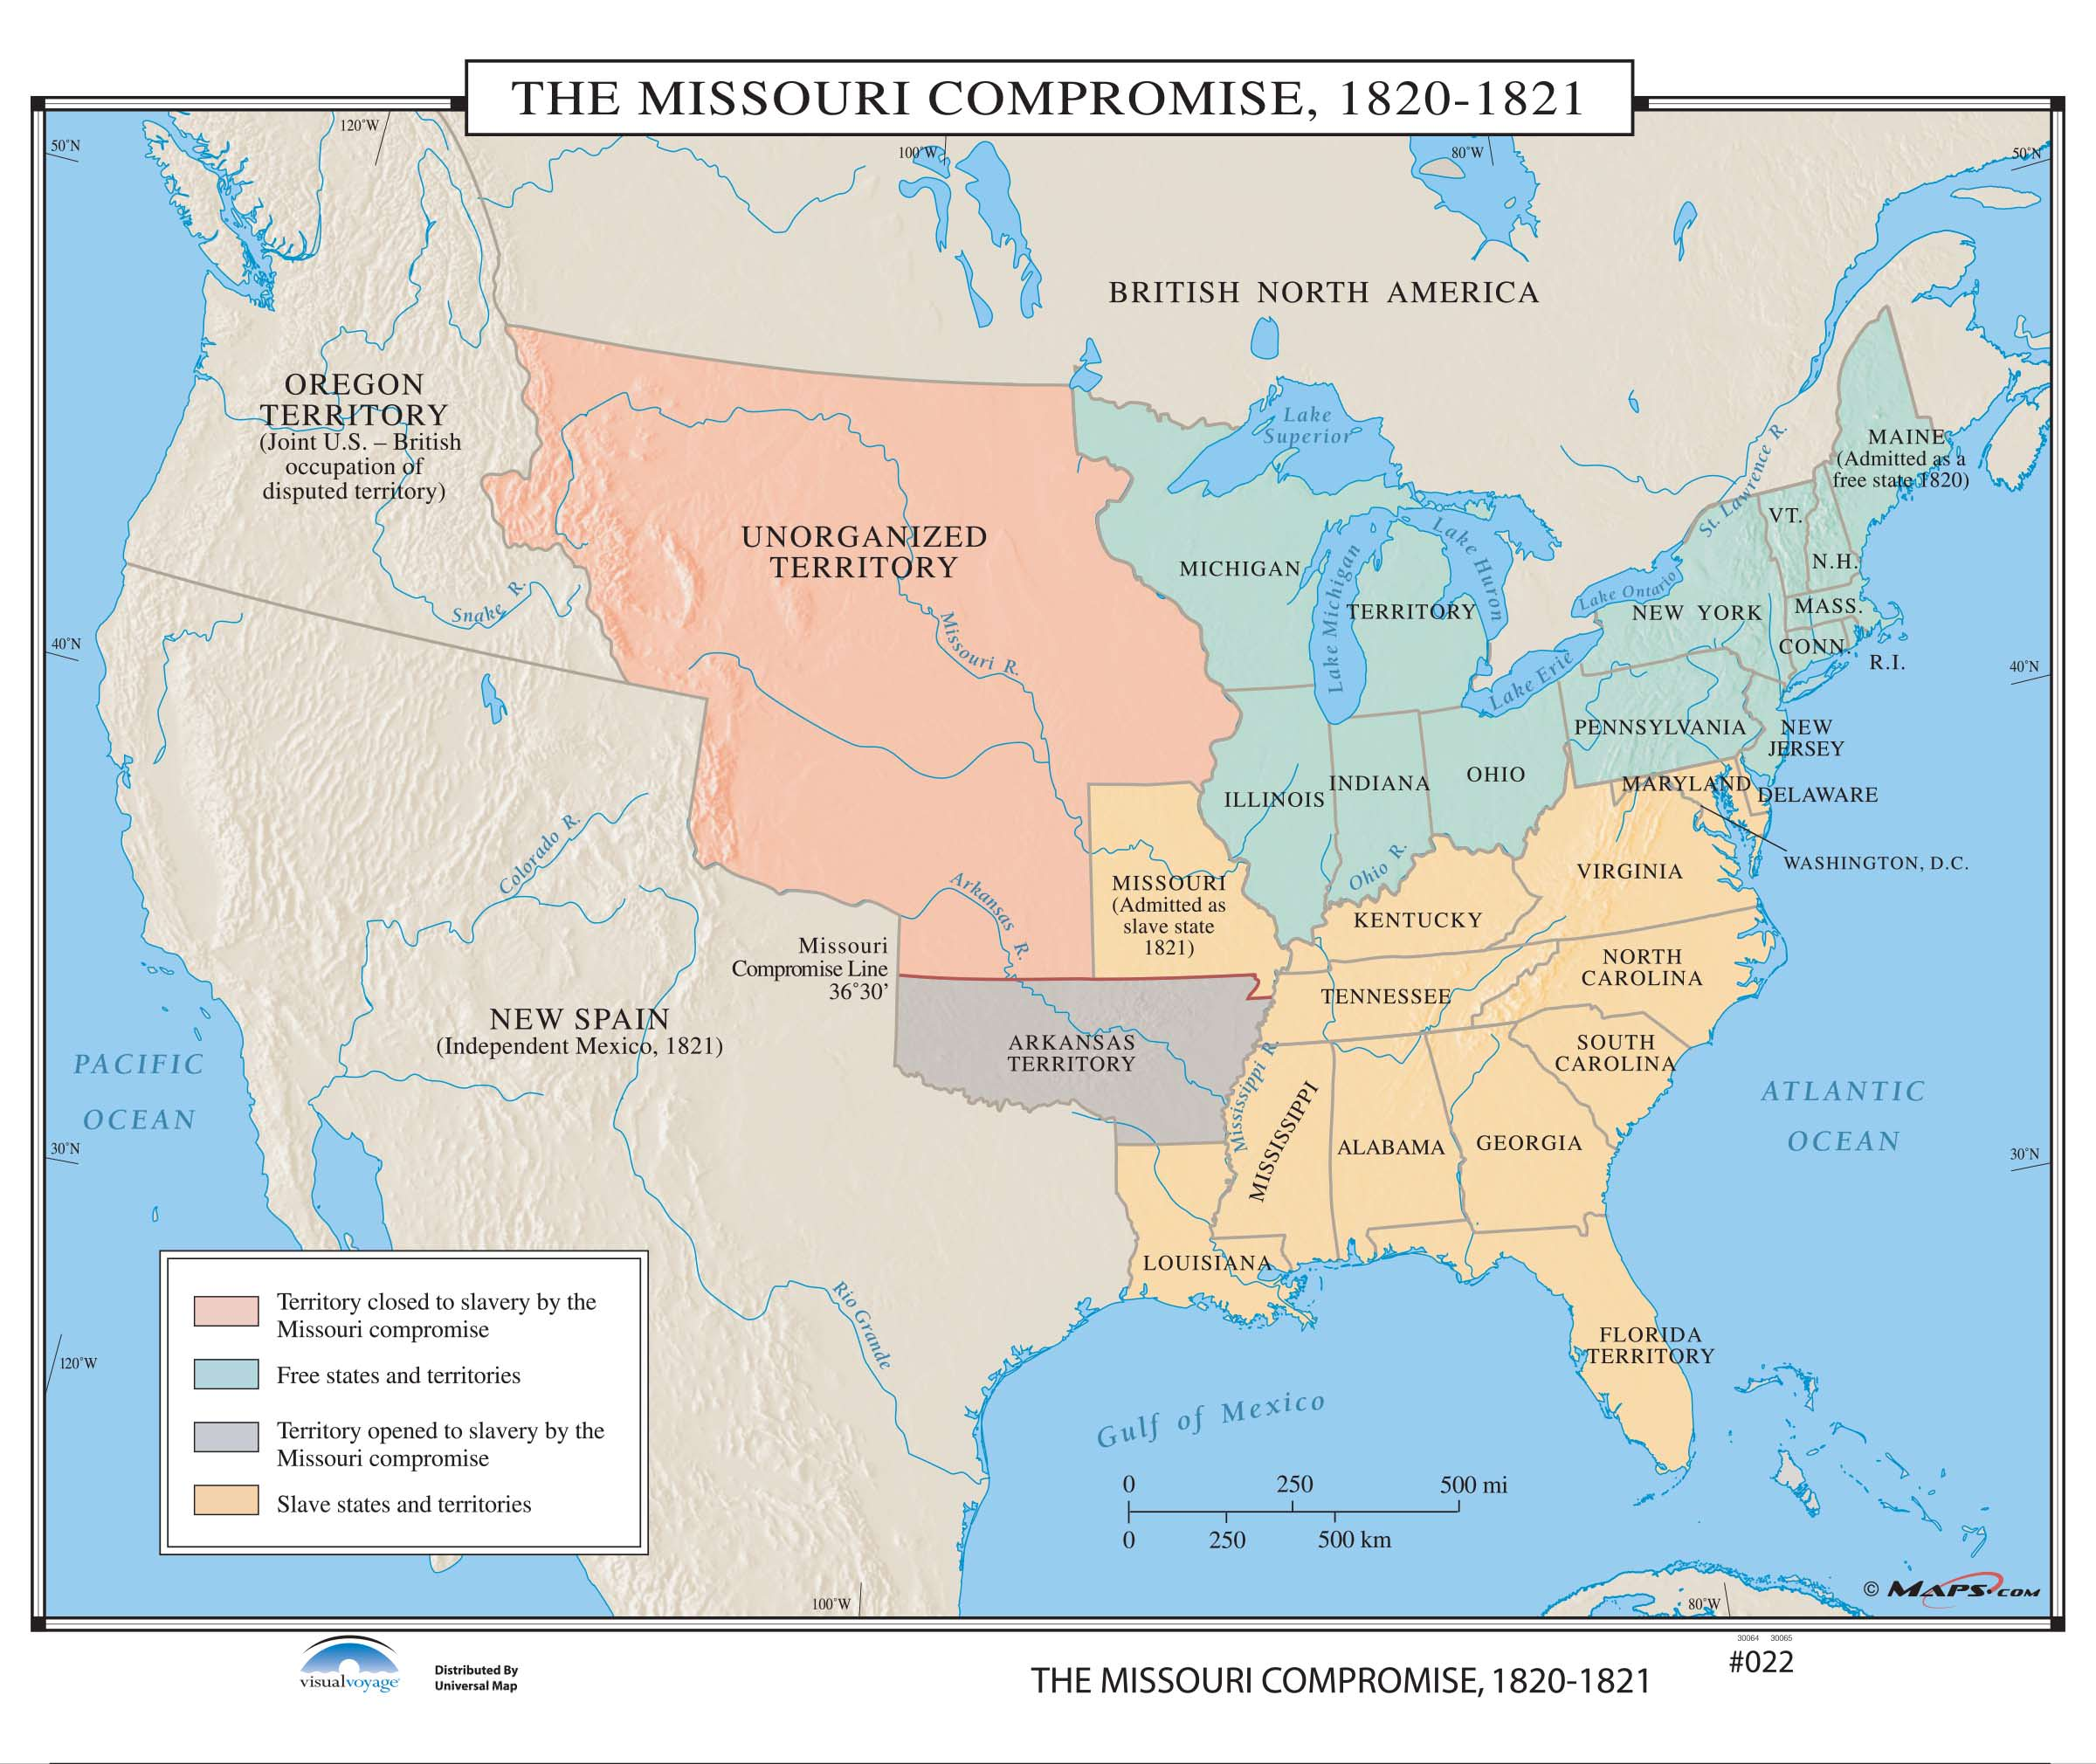 022 the missouri compromise 1820 1821